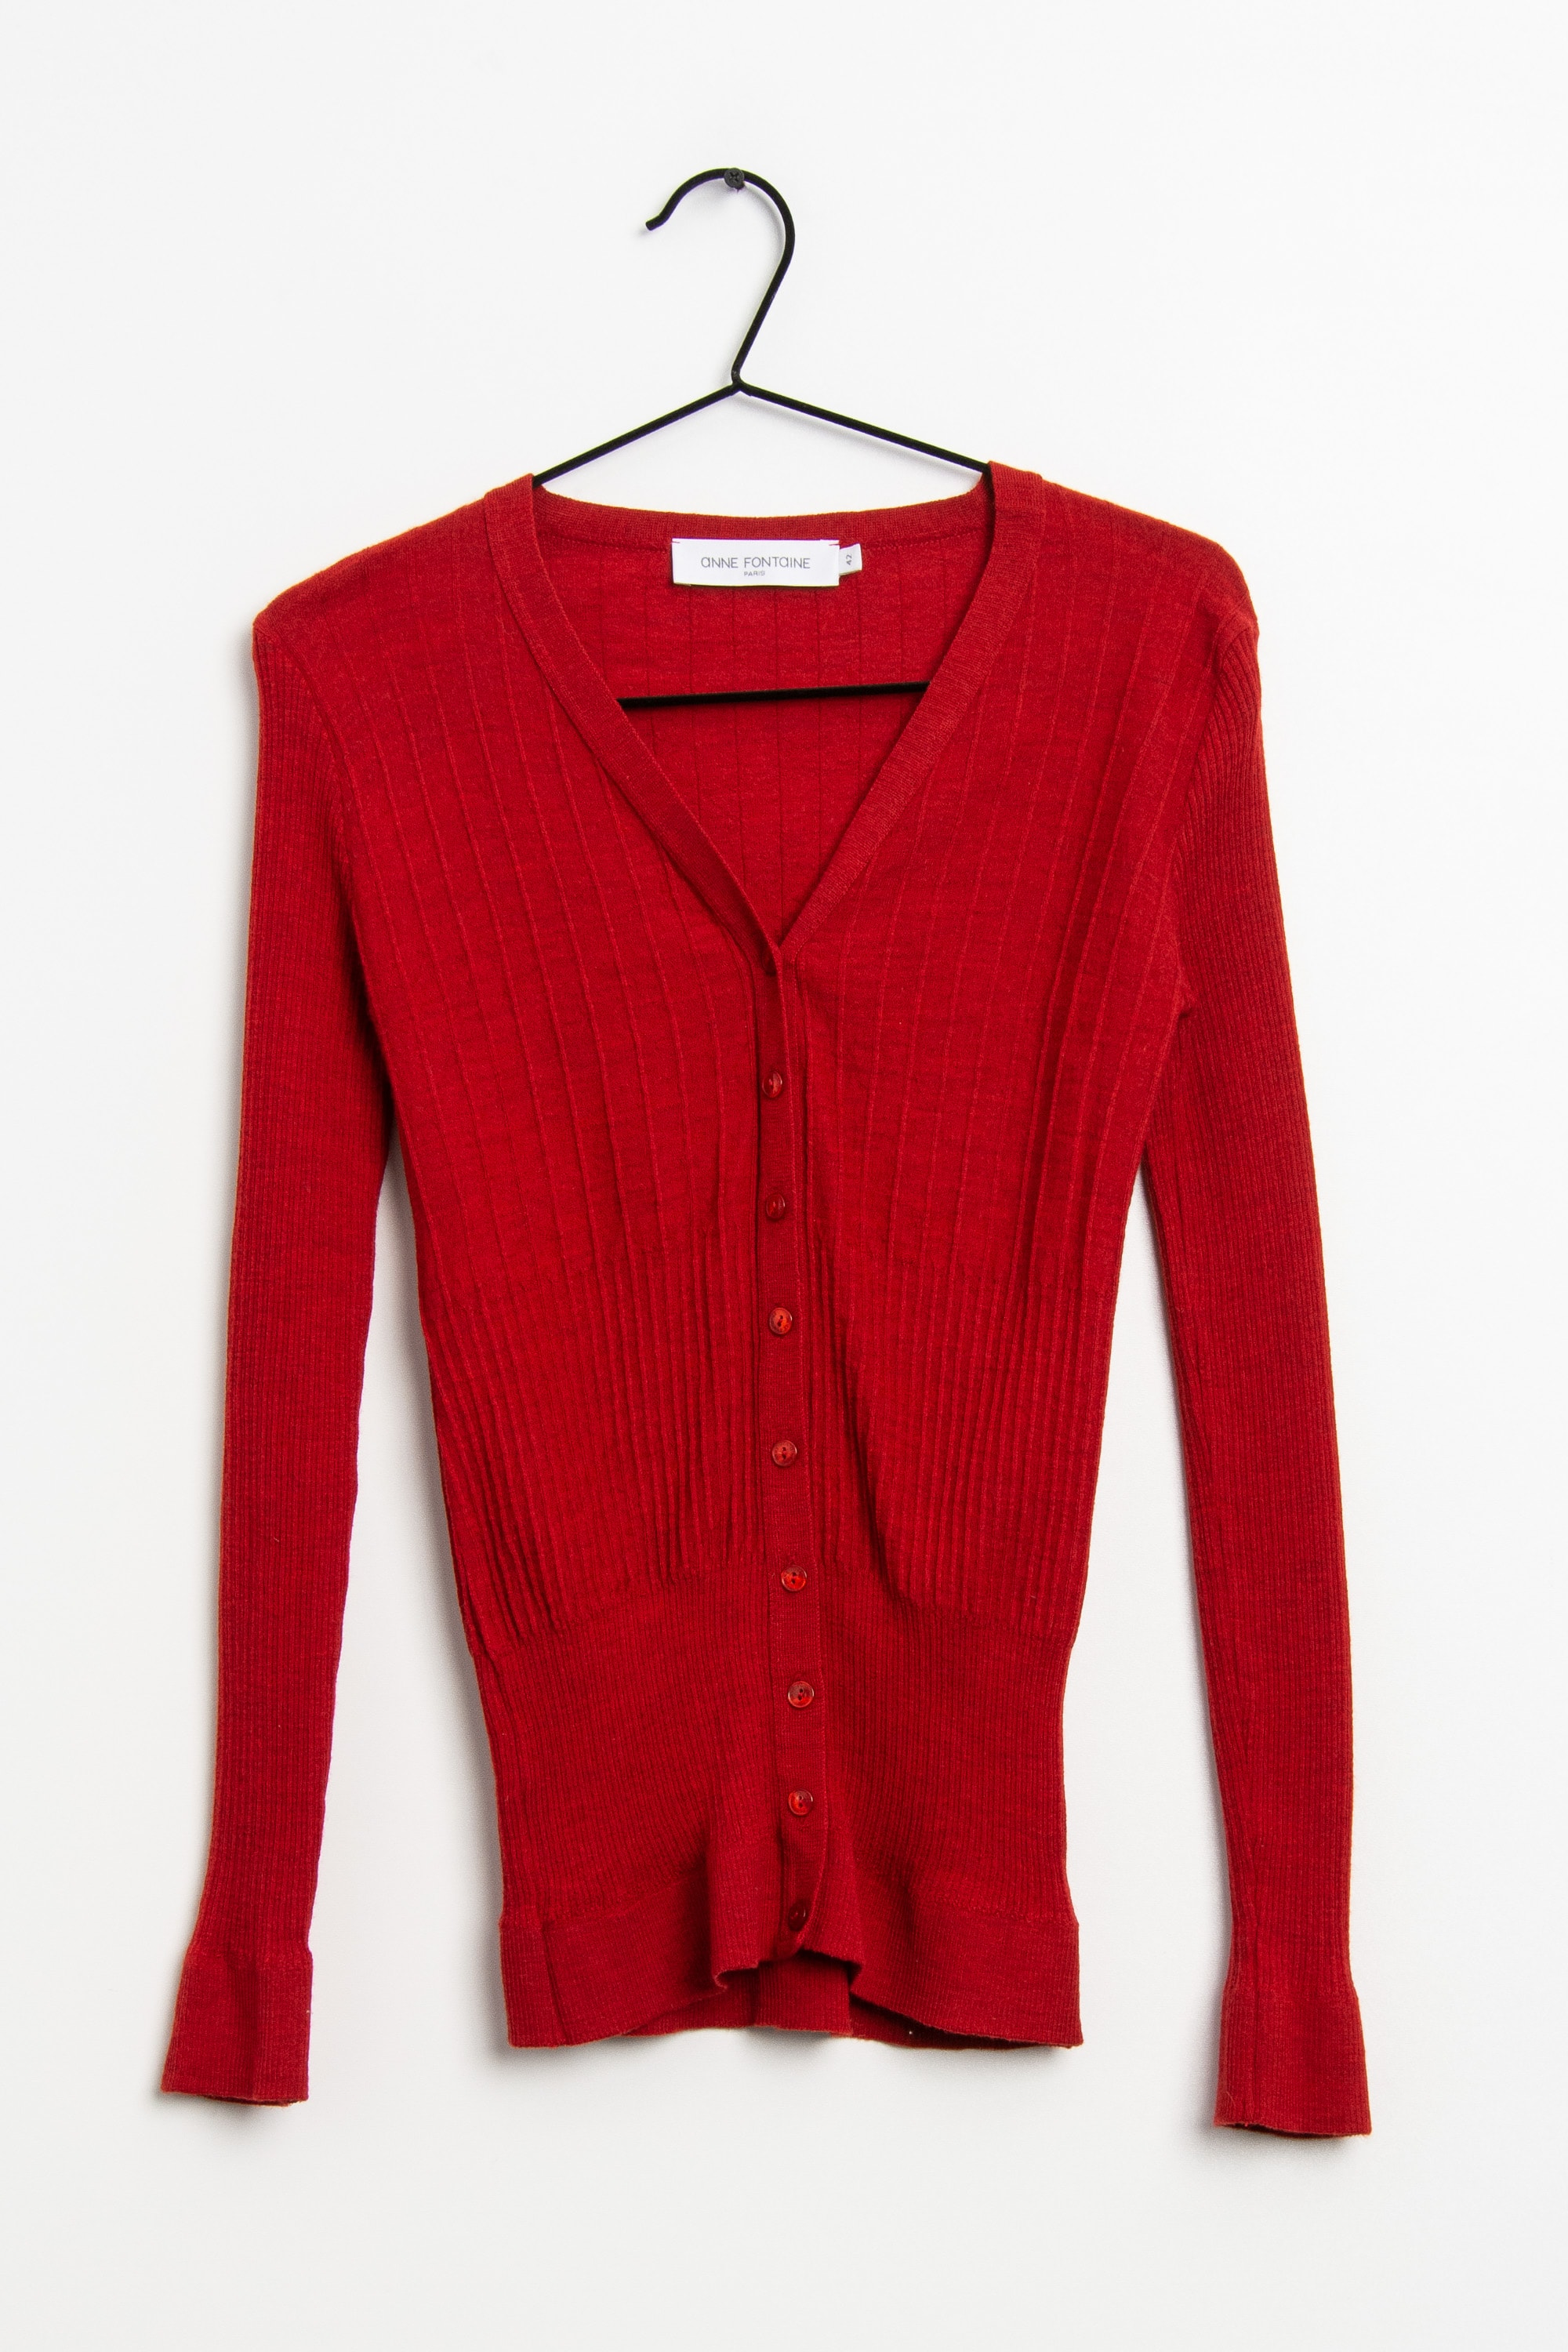 ANNE FONTAINE Strickjacke Rot Gr.42